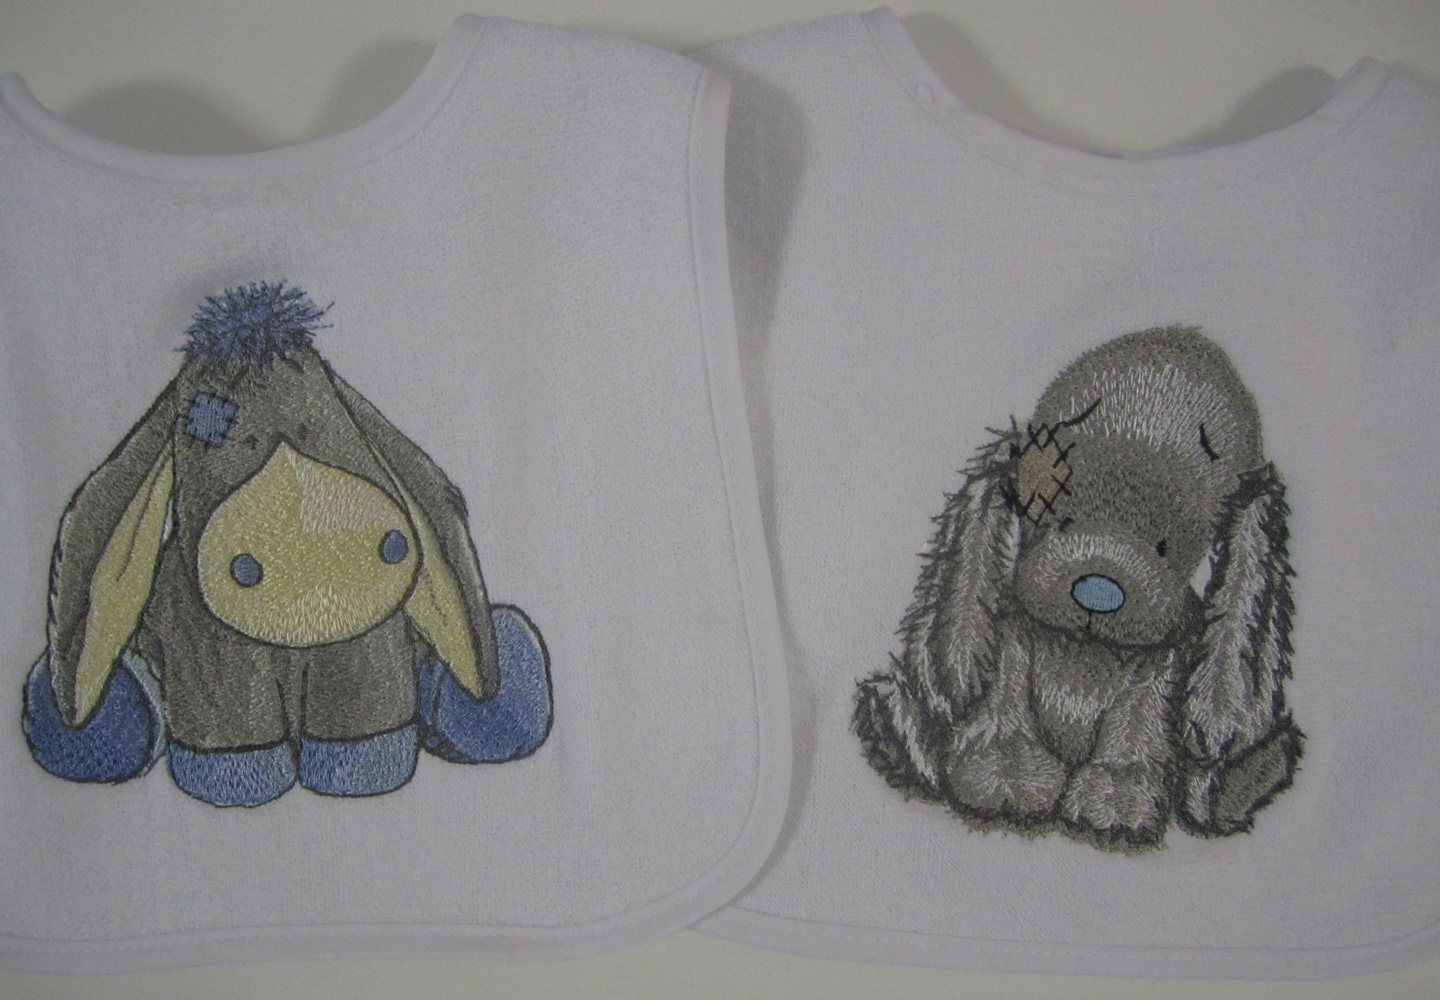 Sugarcube and Bixie embroidery designs on baby bibs